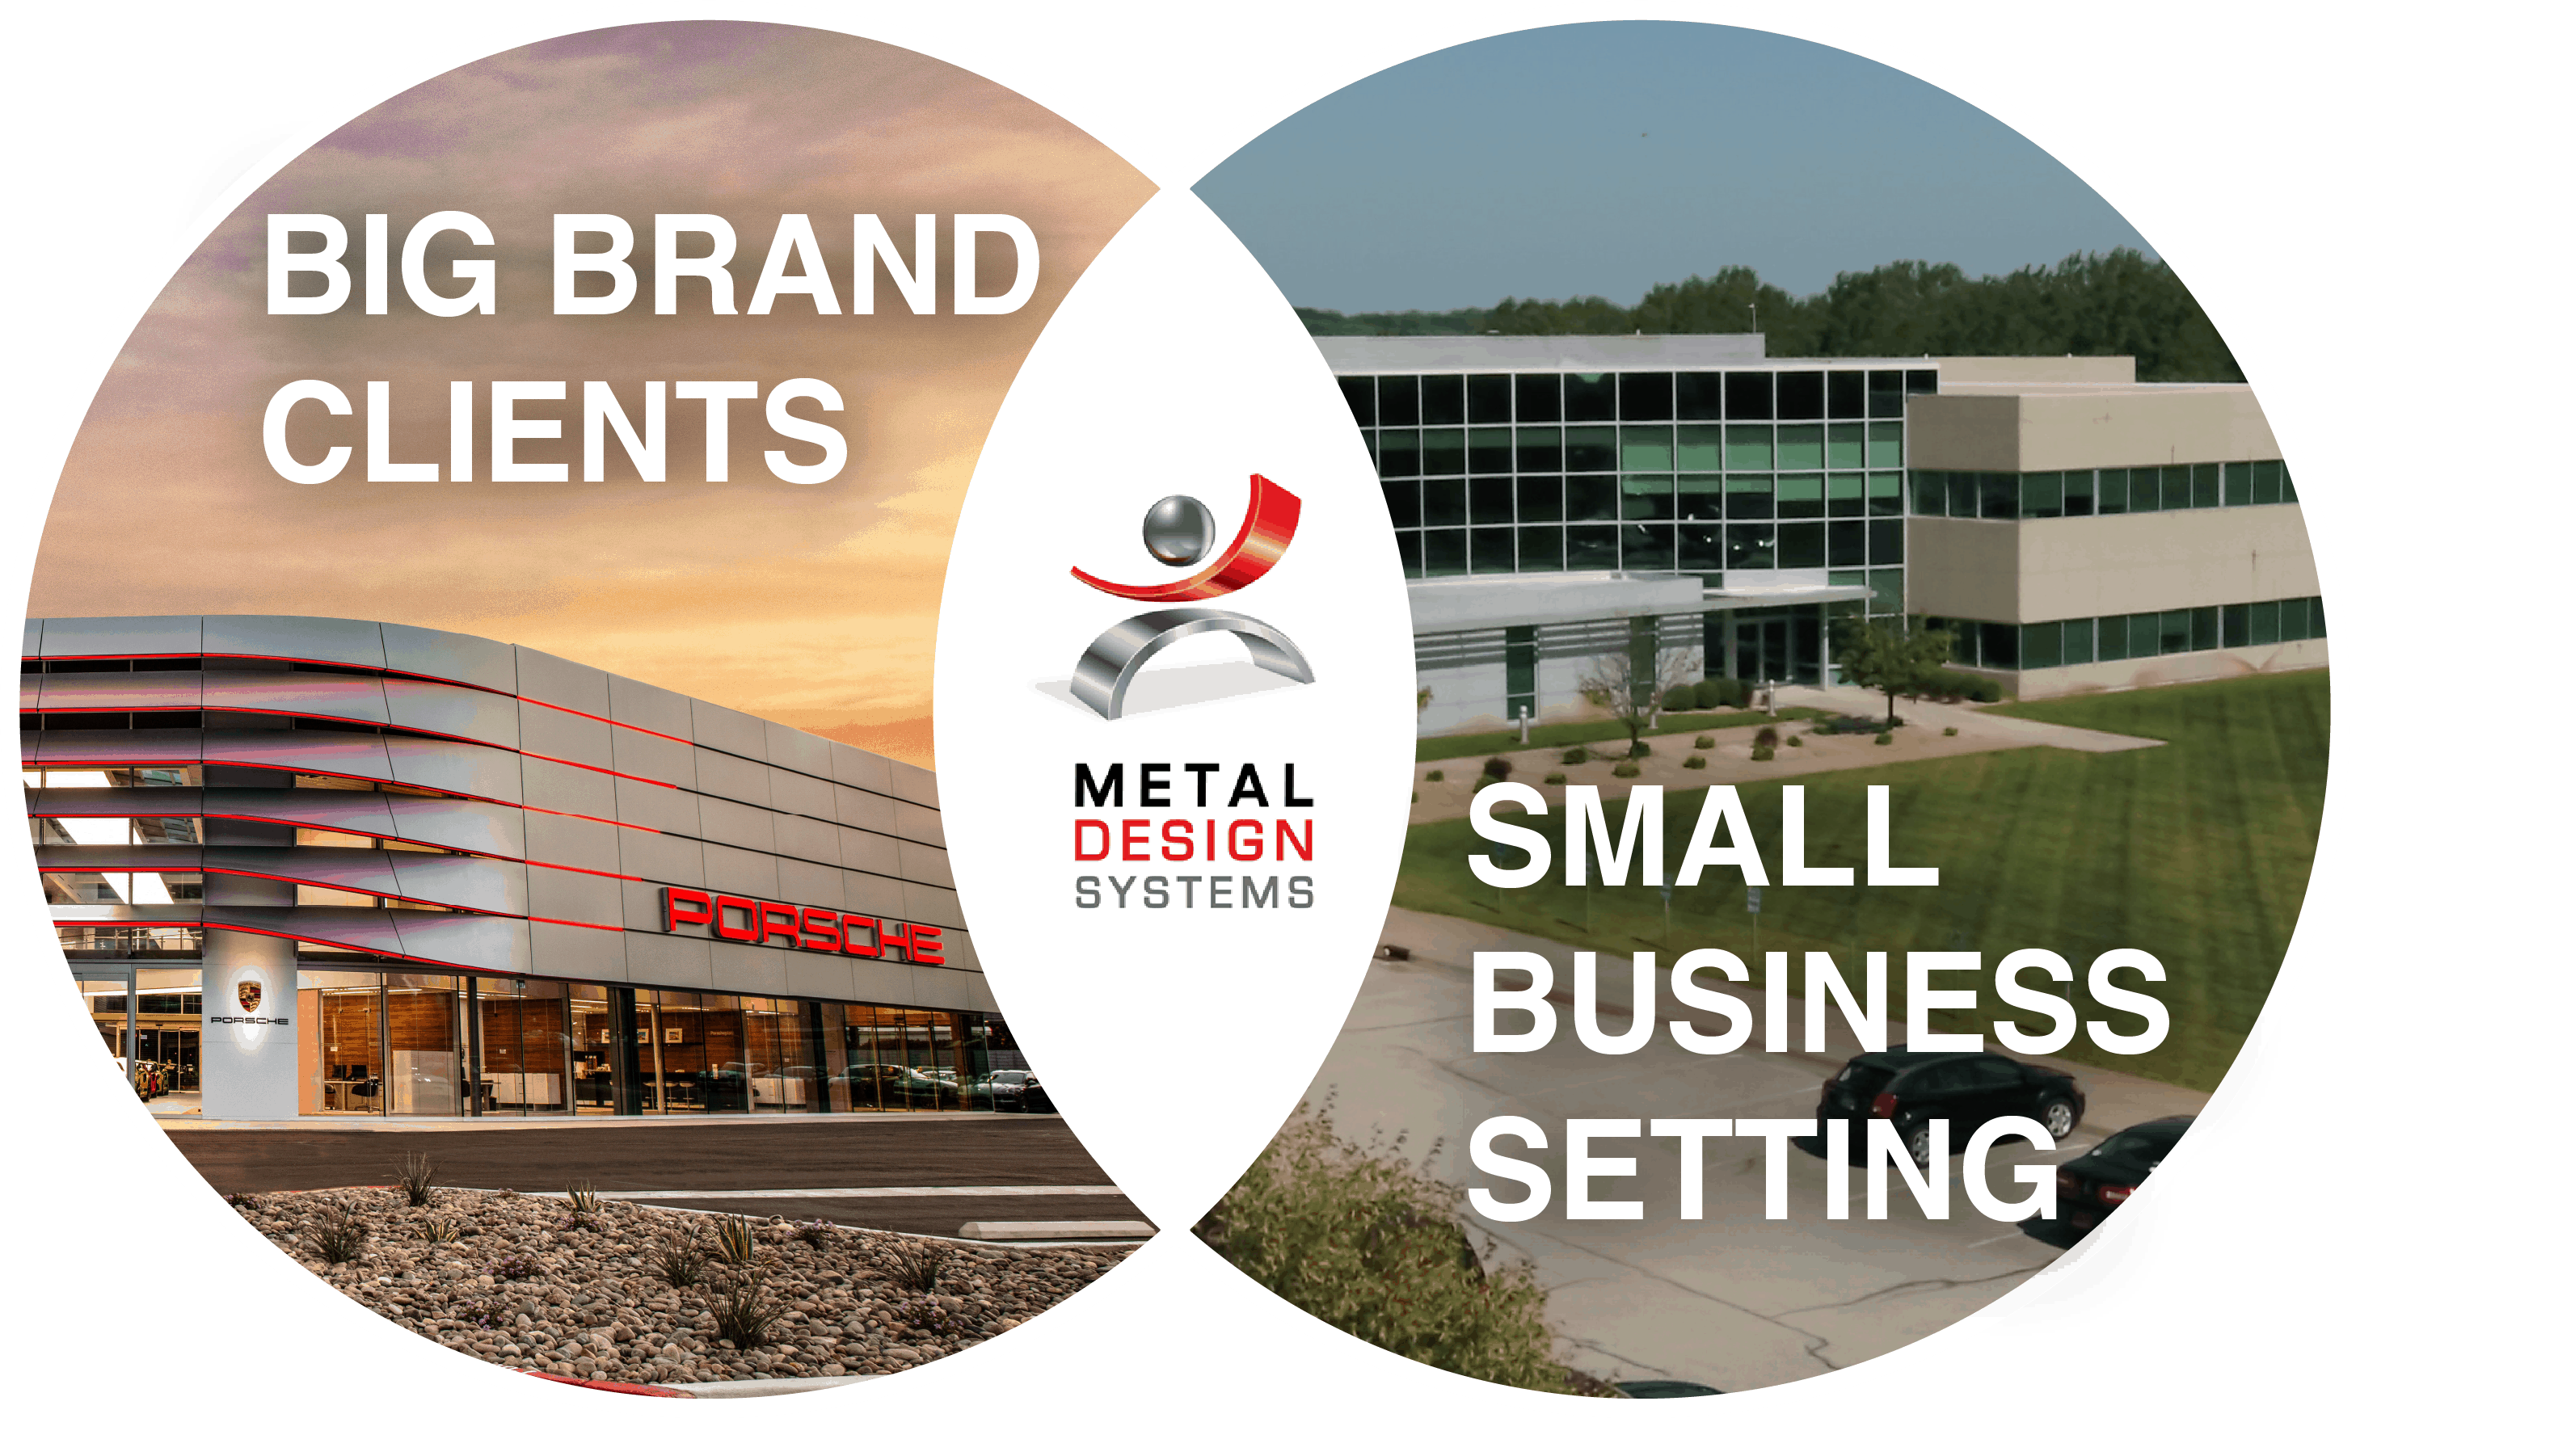 Metal Design Systems provides the opportunity to work for big brand clients in a small business setting.